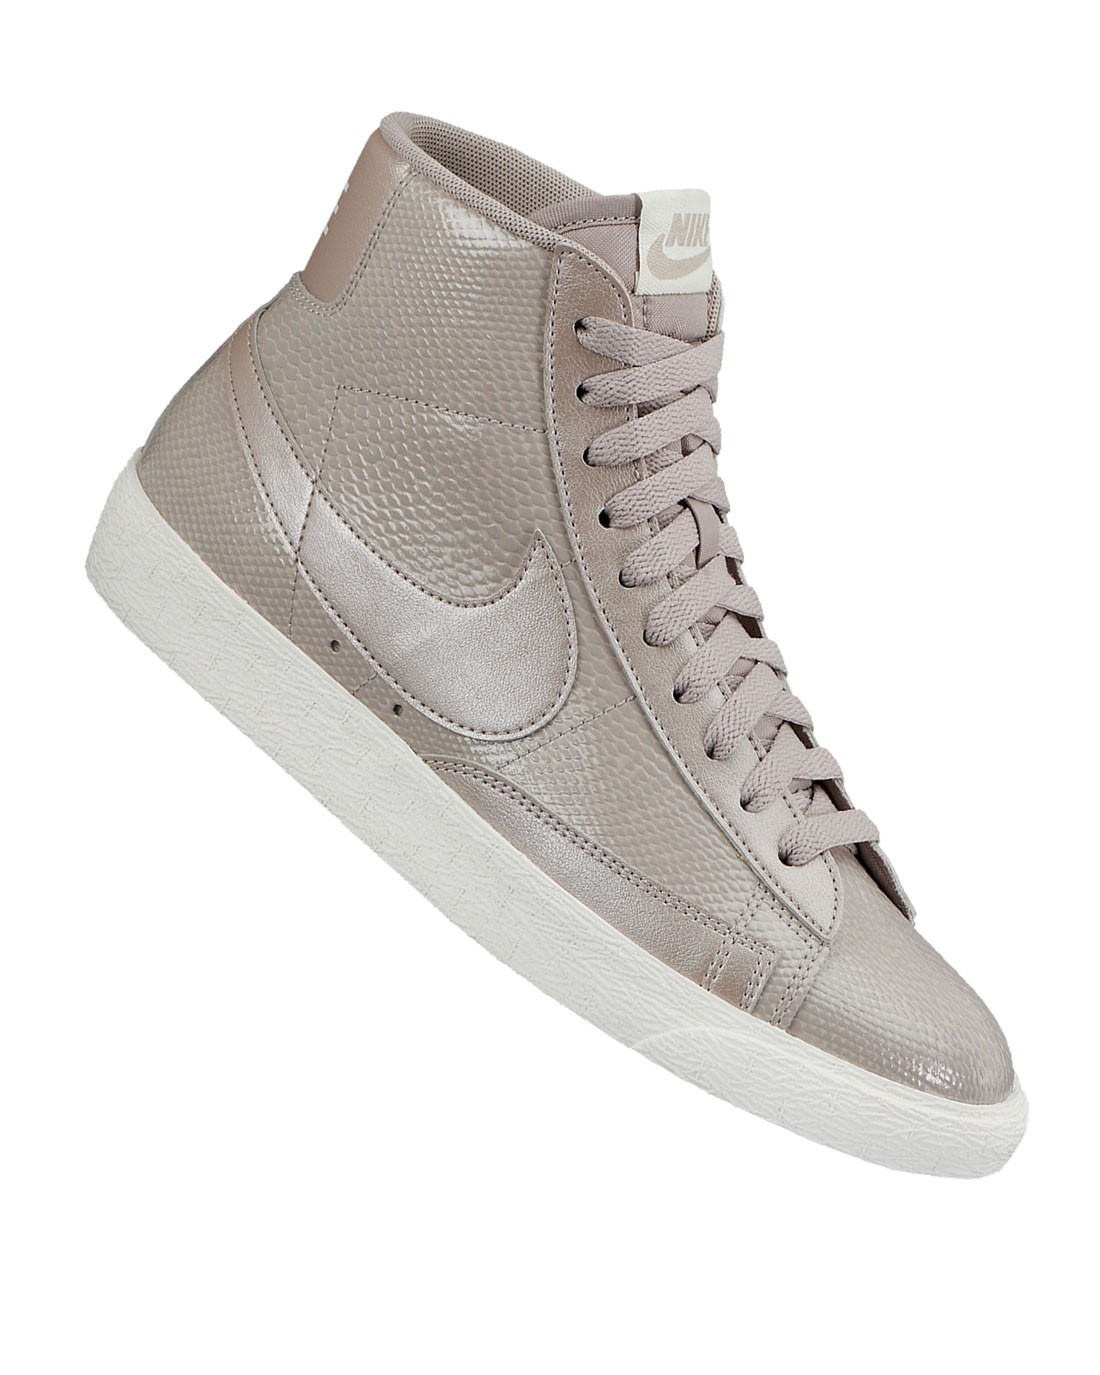 Nike Blazer Mid Leather Premium (Ltr Prm) 685225-100 Orewood Brown White Men's Shoe